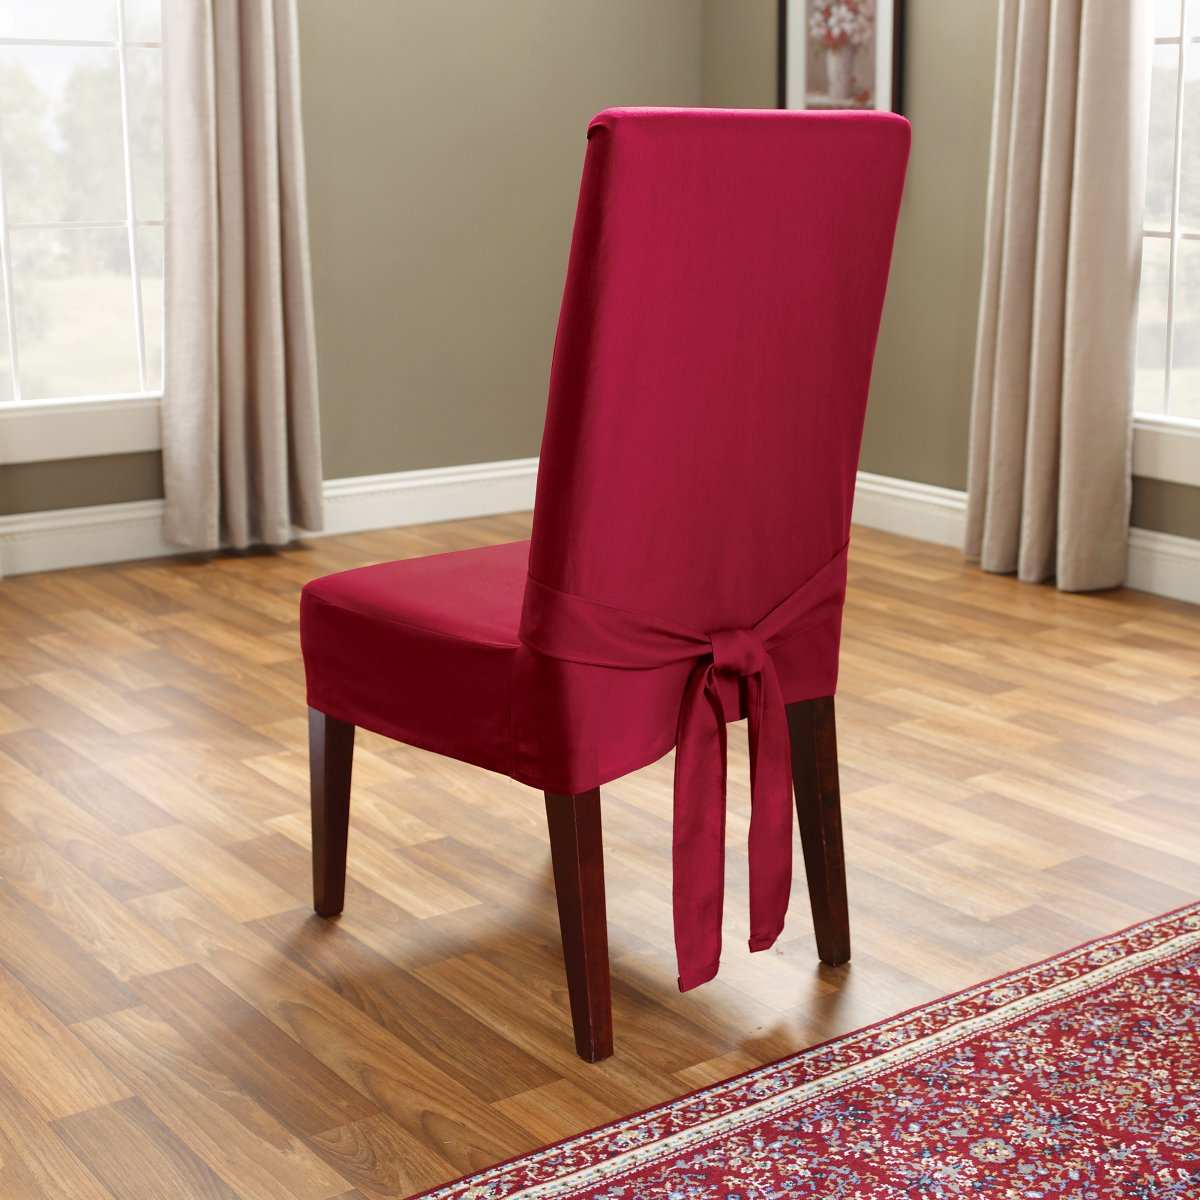 Chair covers for dining chairs Photo - 1